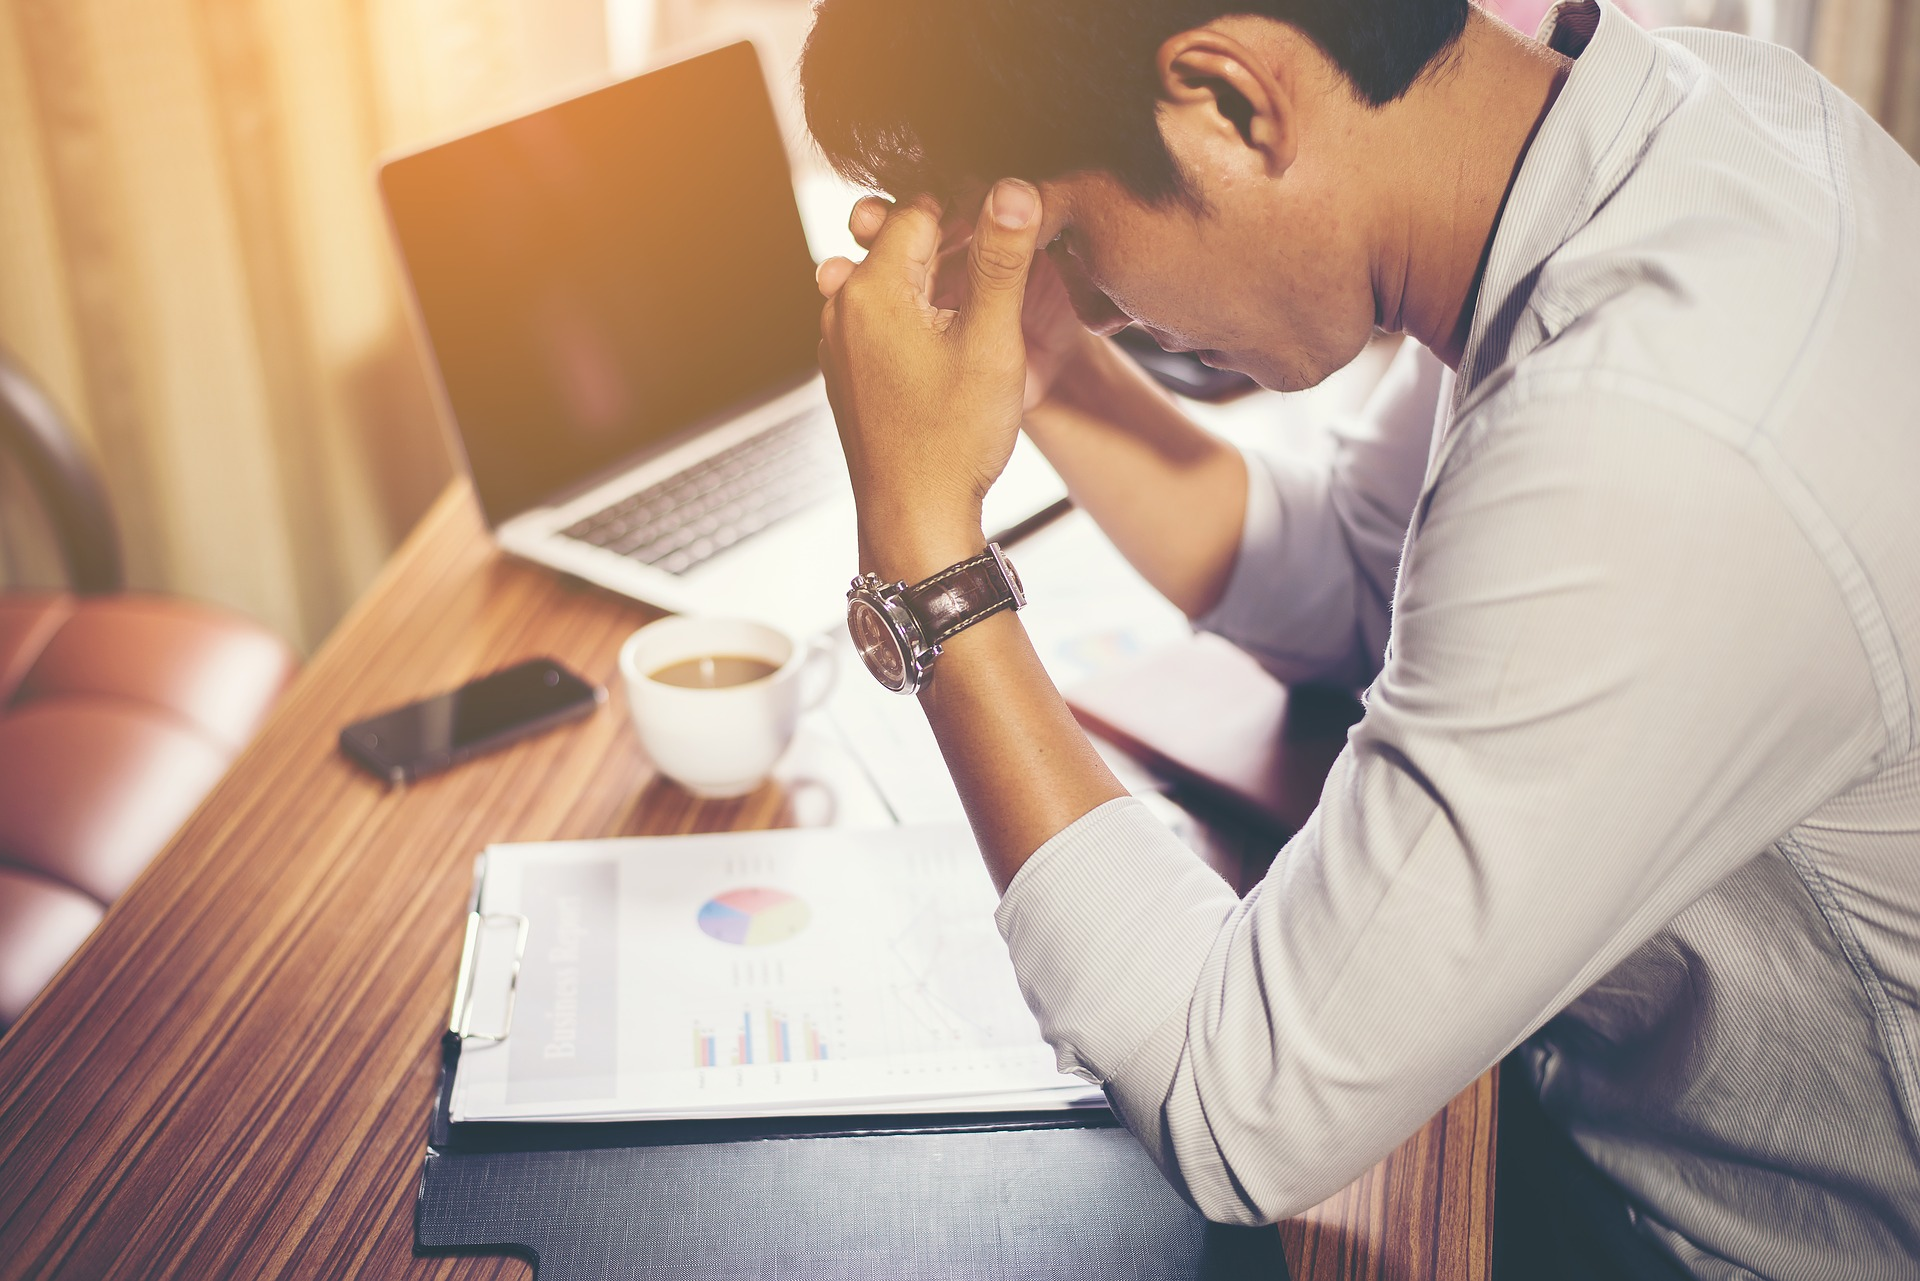 Warning Signs of Business Burnout